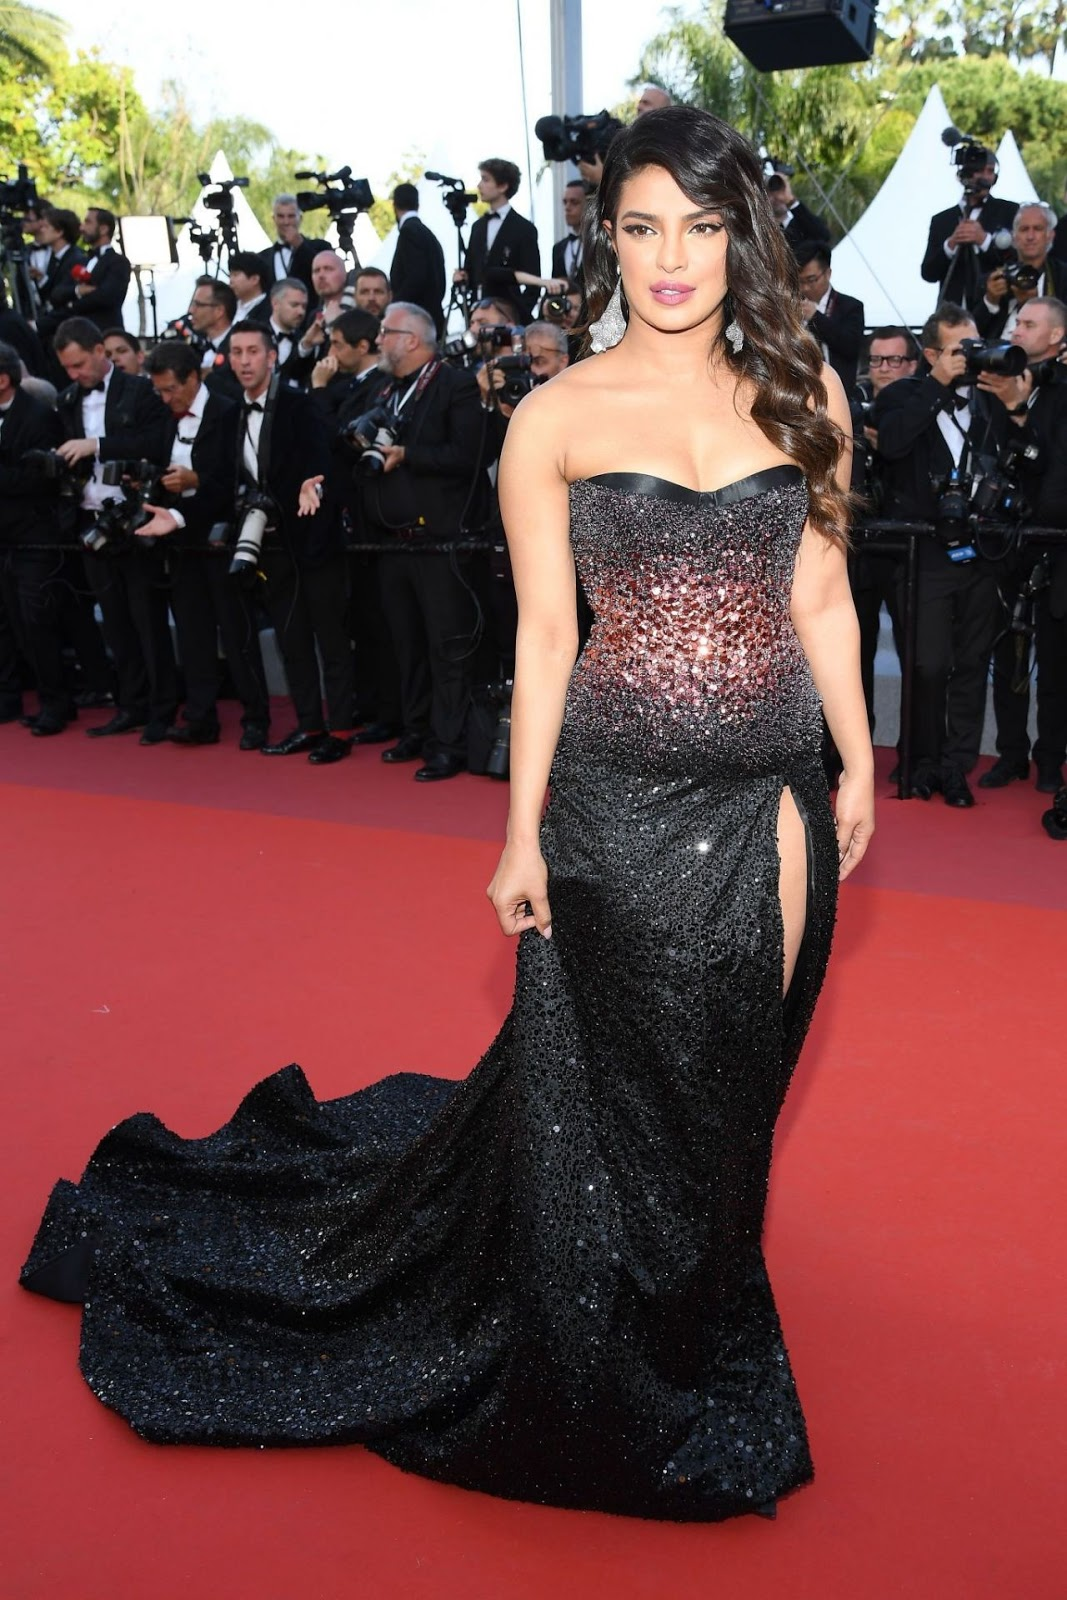 Priyanka Chopra Makes Her Cannes Debut in a Glittering Black High Leg Slit Dress